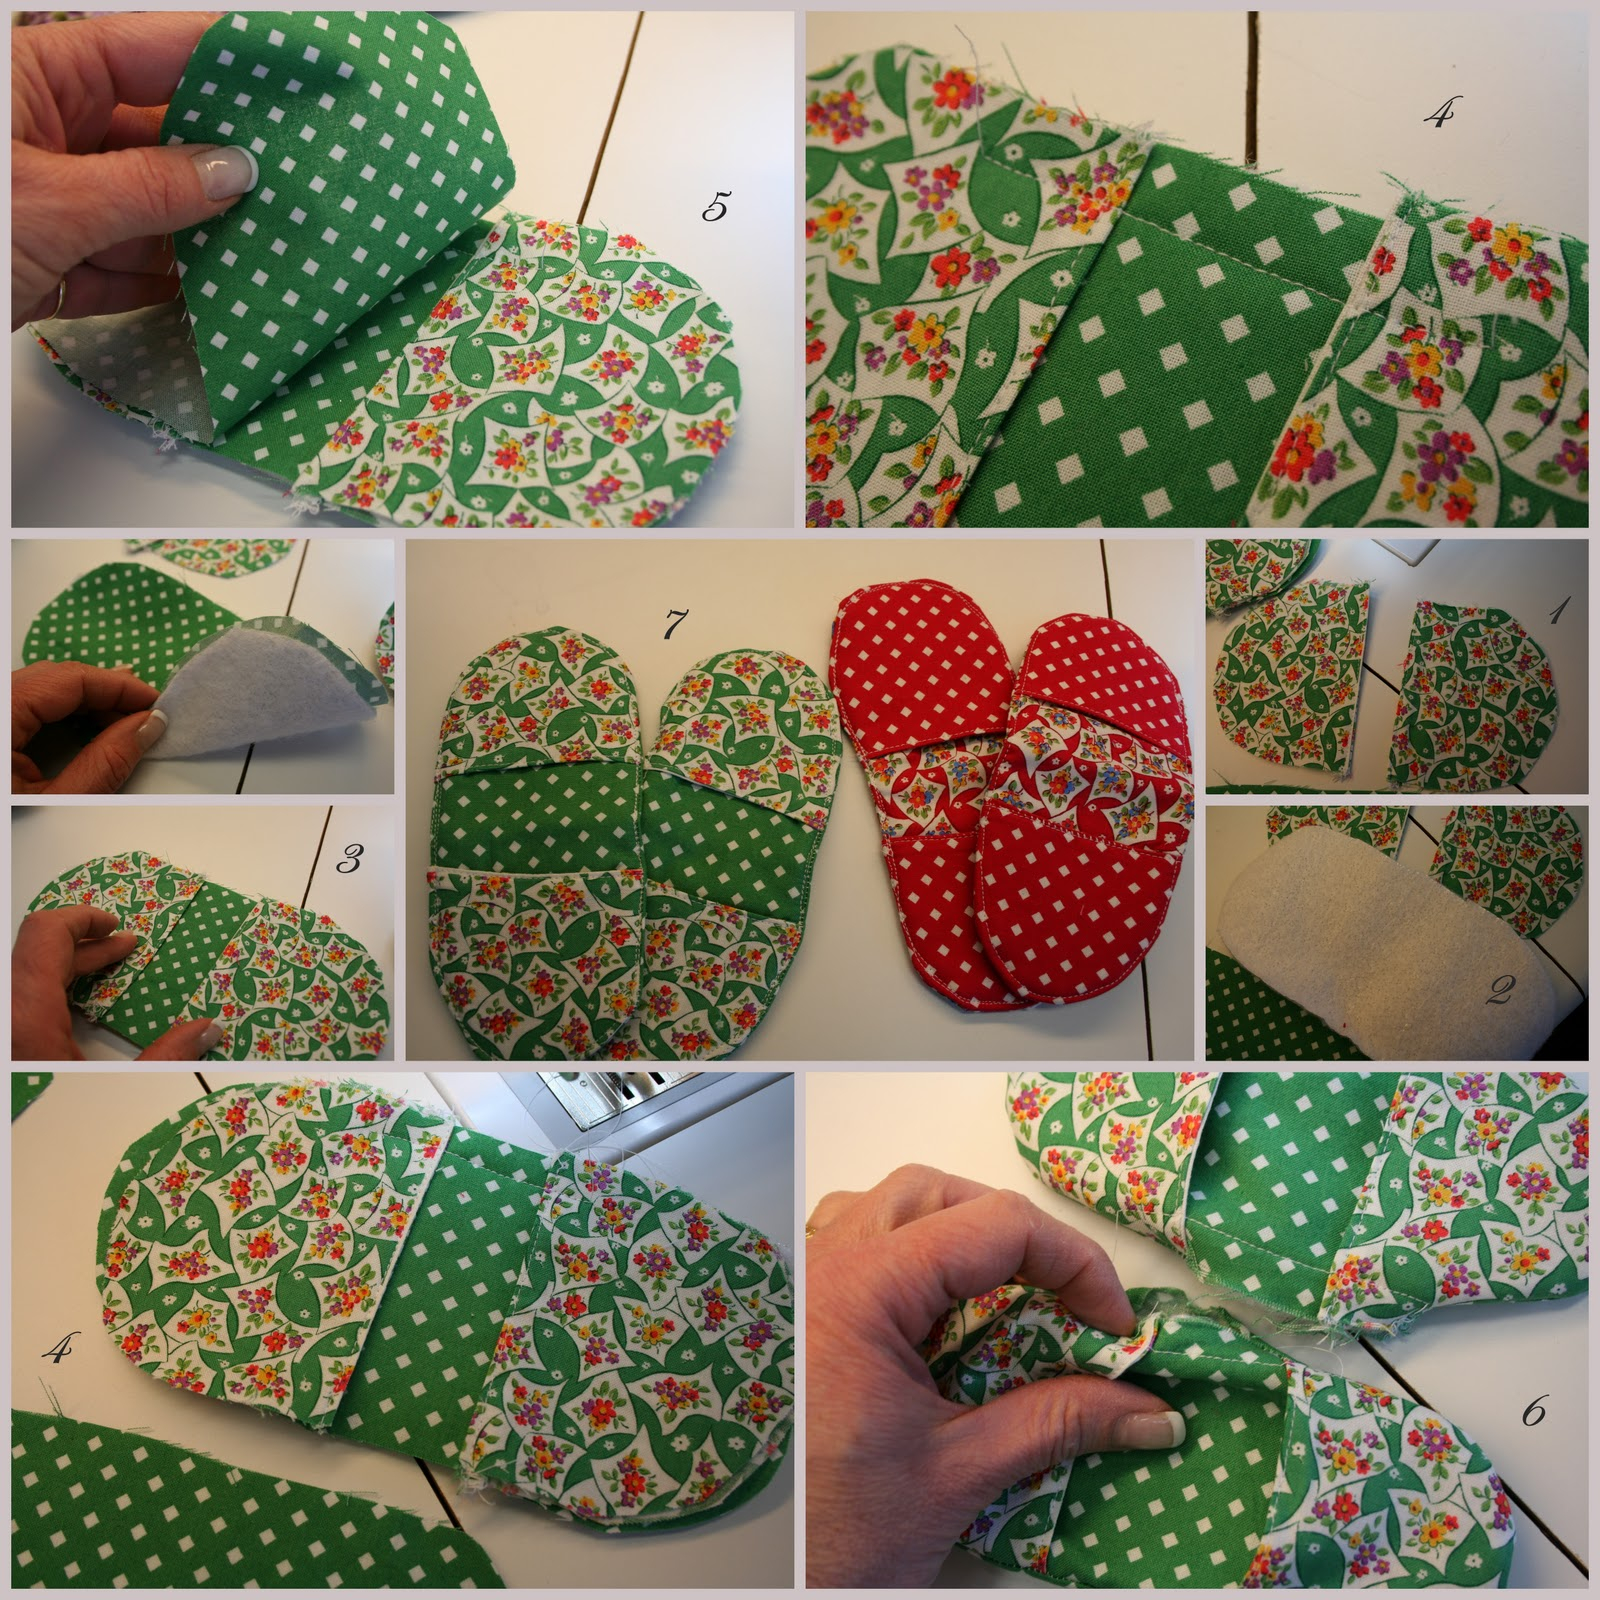 Sew Potholders Pot Holders Fintgertip Pot Holders